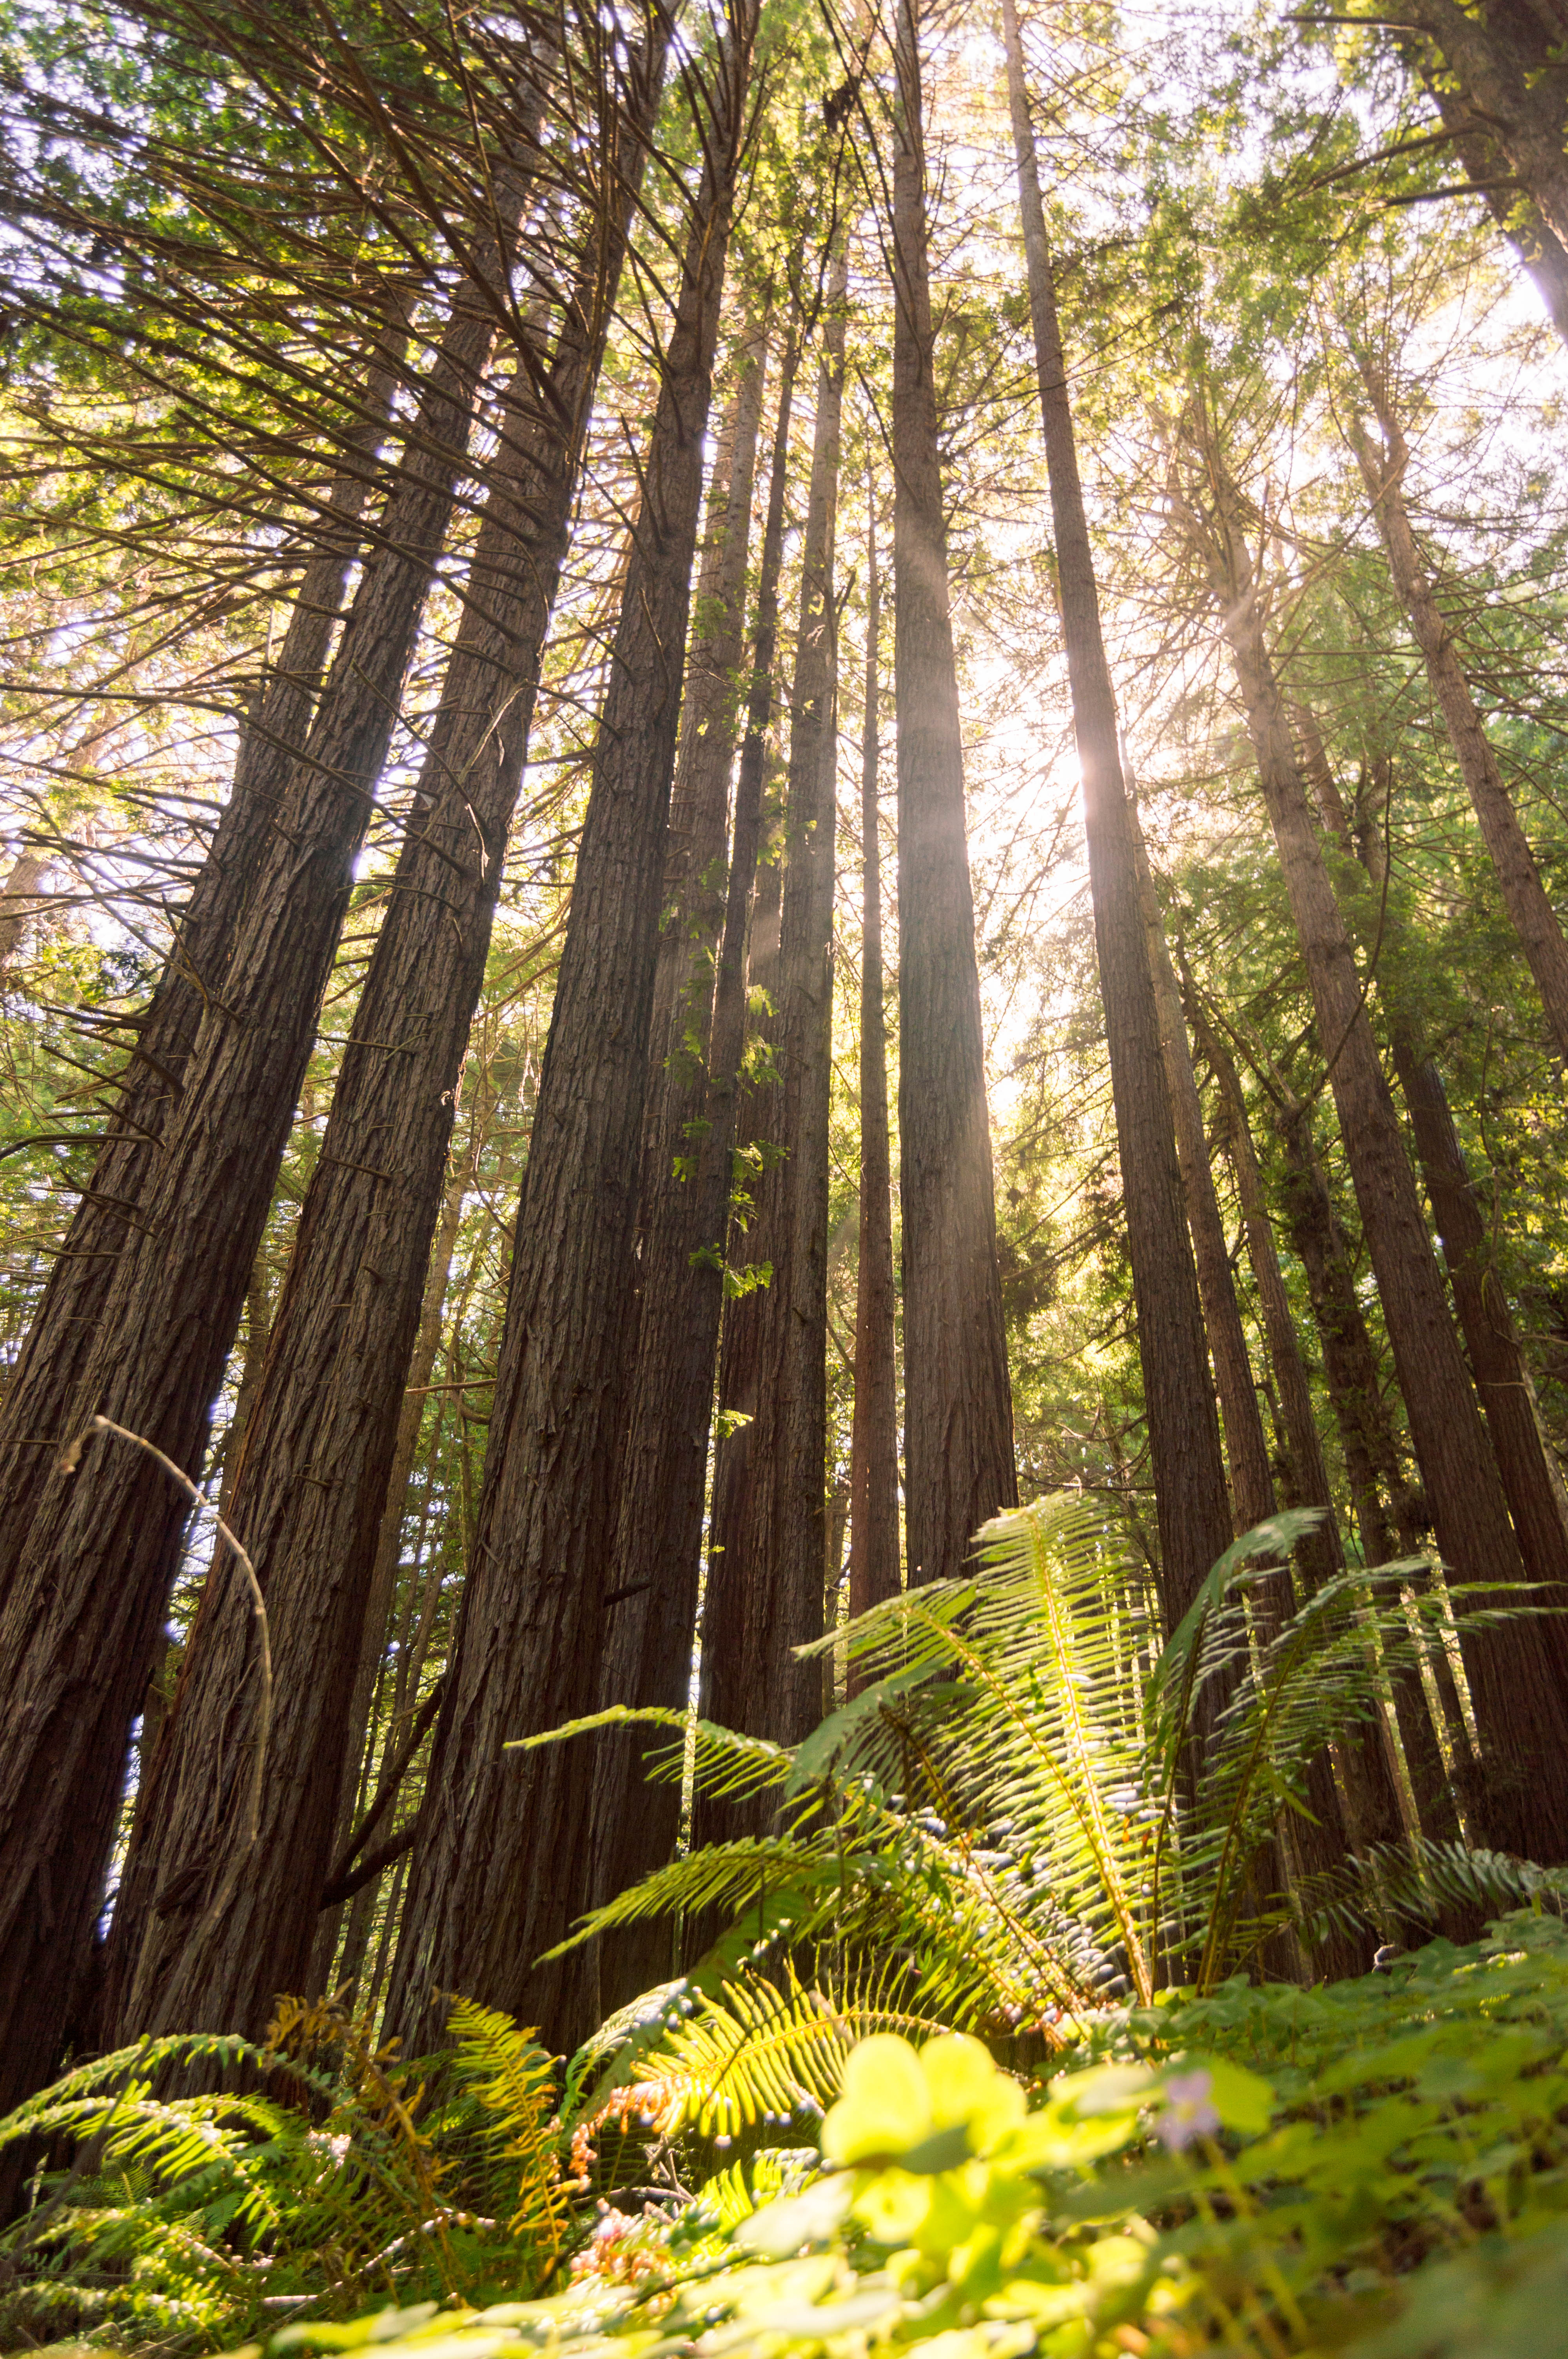 Forest Bathing in the redwoods on the Pomo Canyon Trail, Sonoma County, California